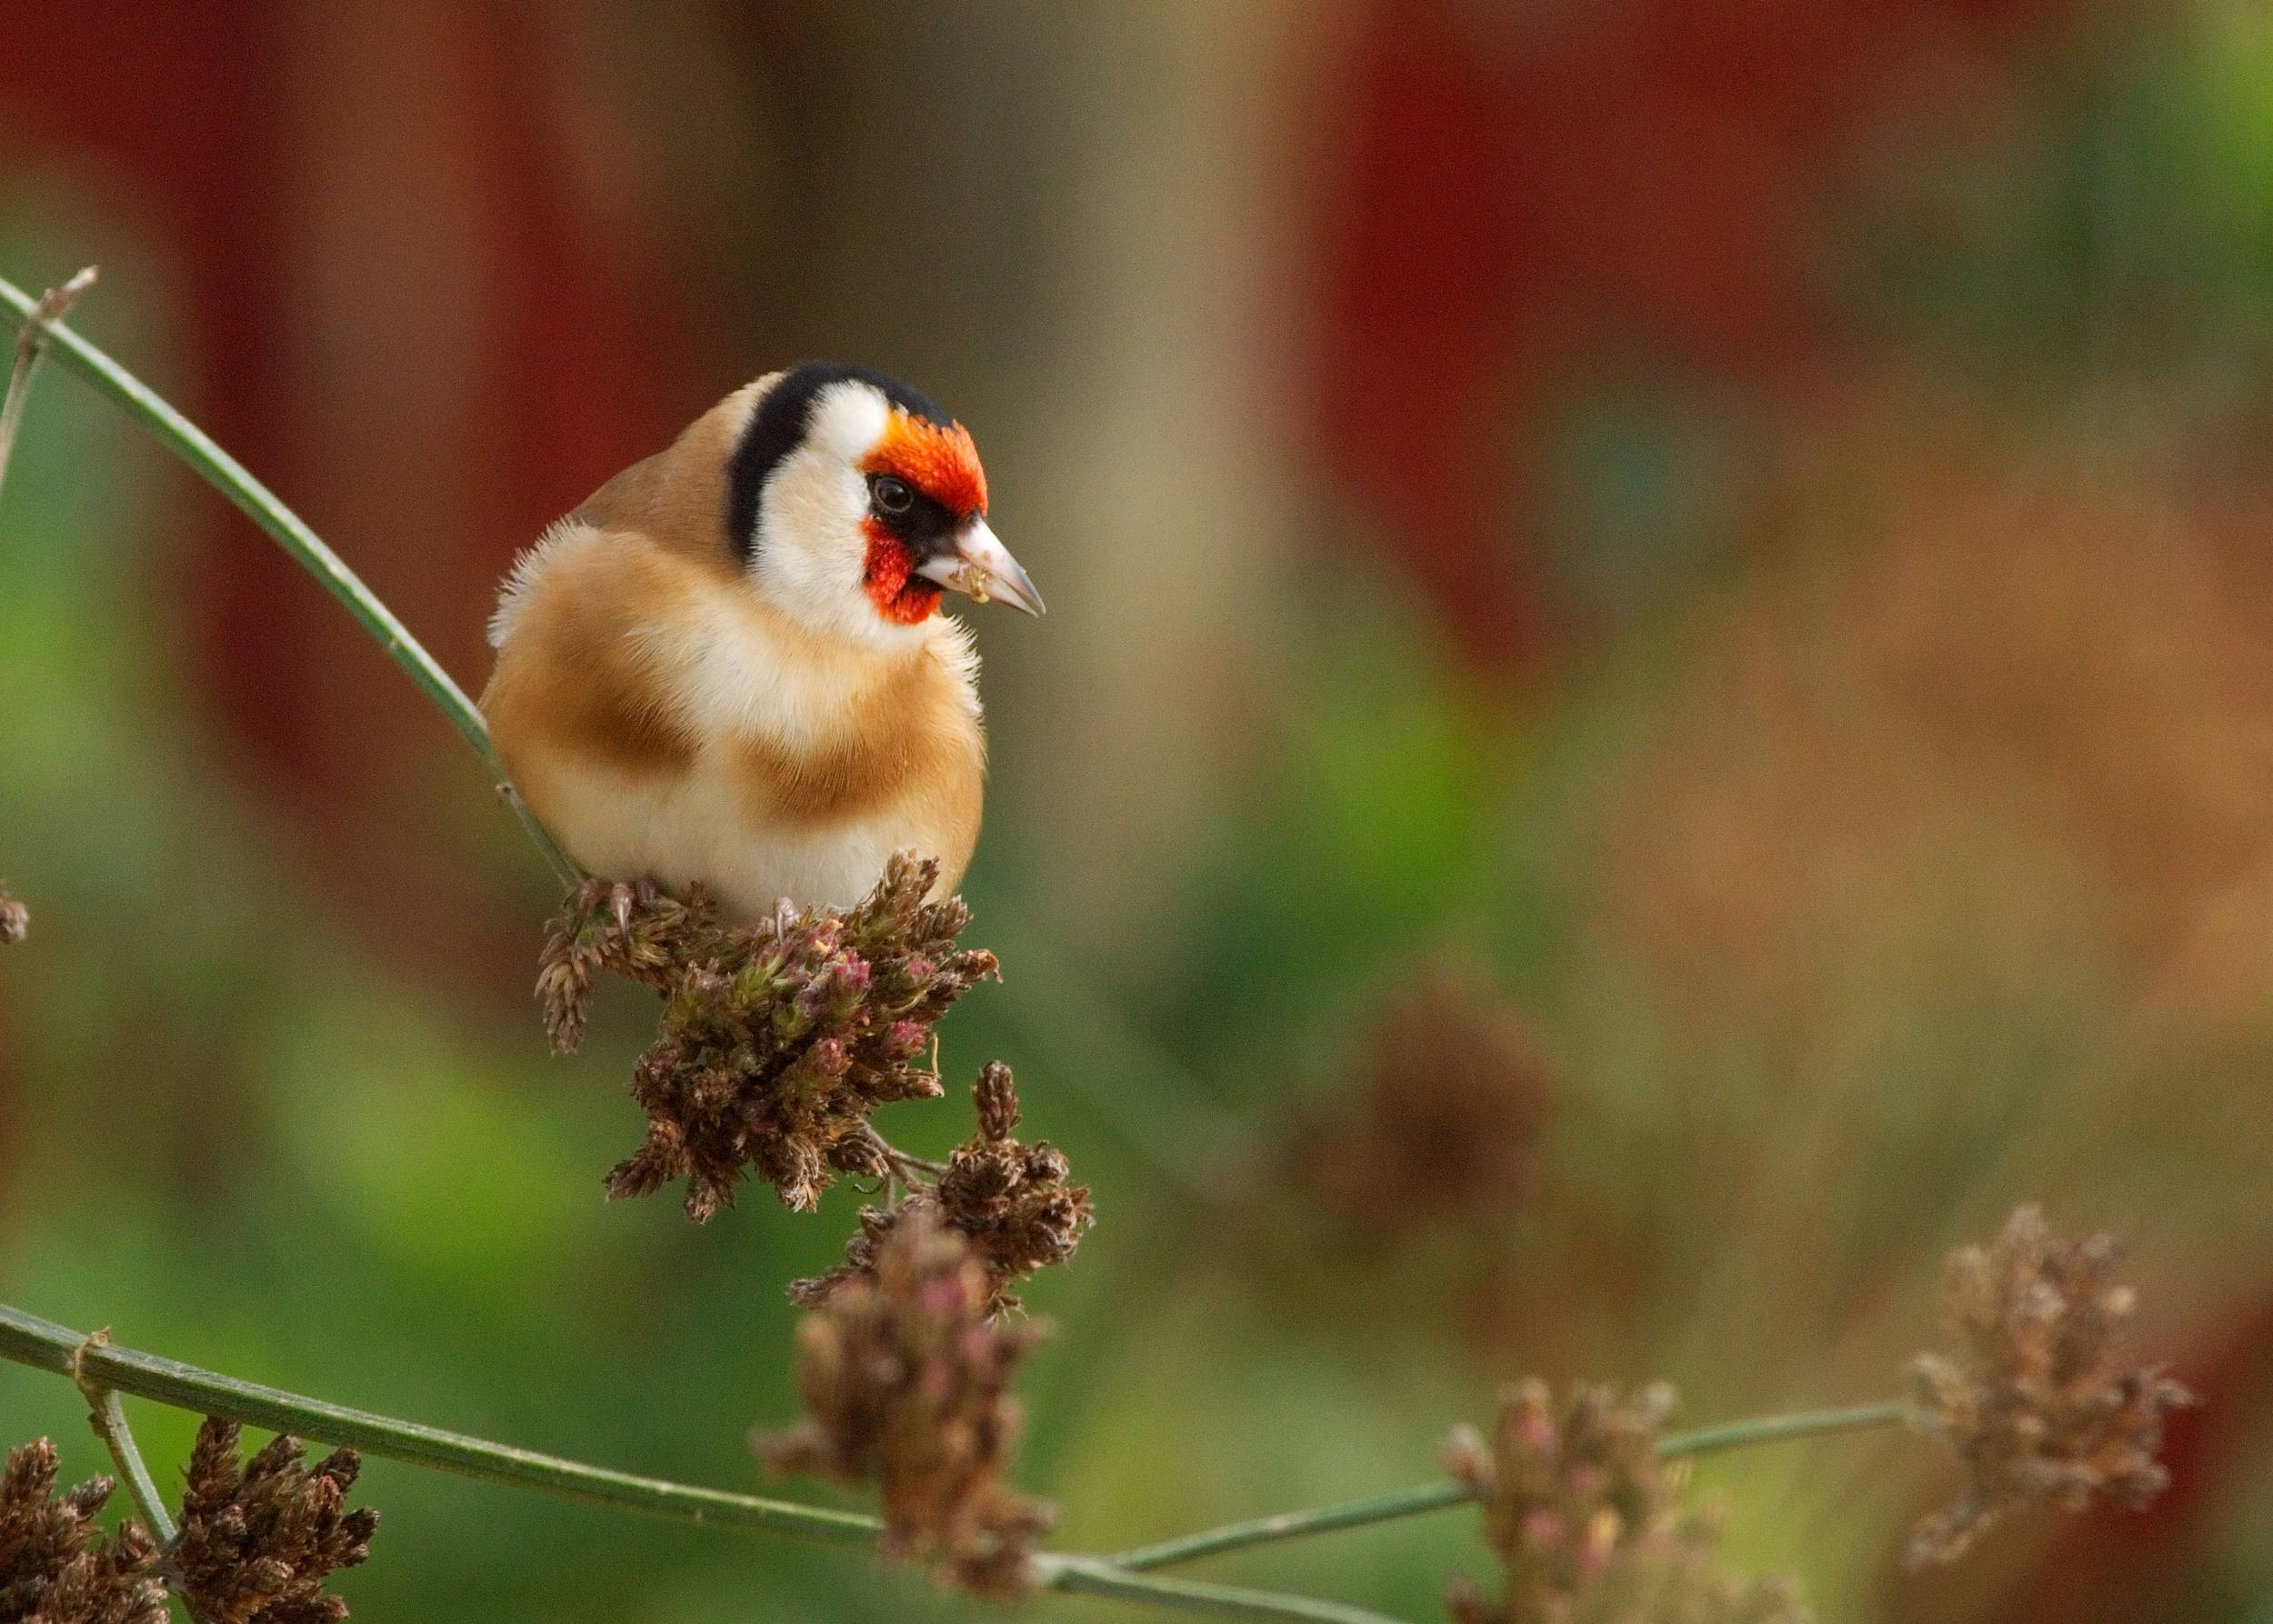 Formerly rare garden birds now booming thanks to food put out for them, report says